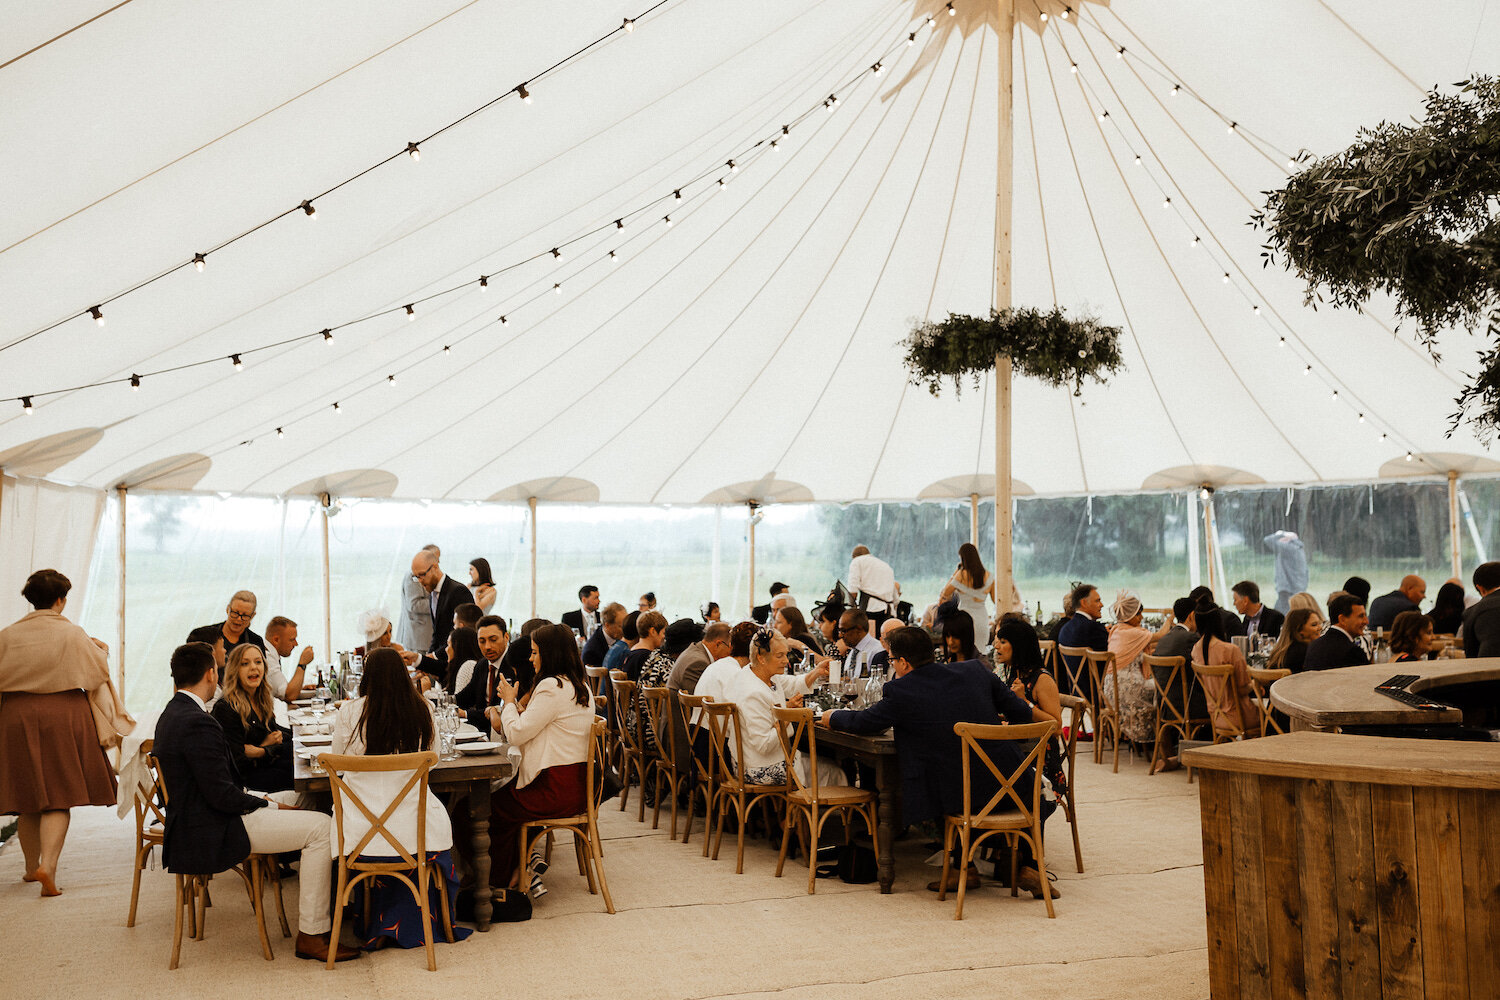 24_India-Sean-PapaKåta-Sperry-Tent-Wedding-Caitlin-Jones-Photography-Sperry-Interior.jpg